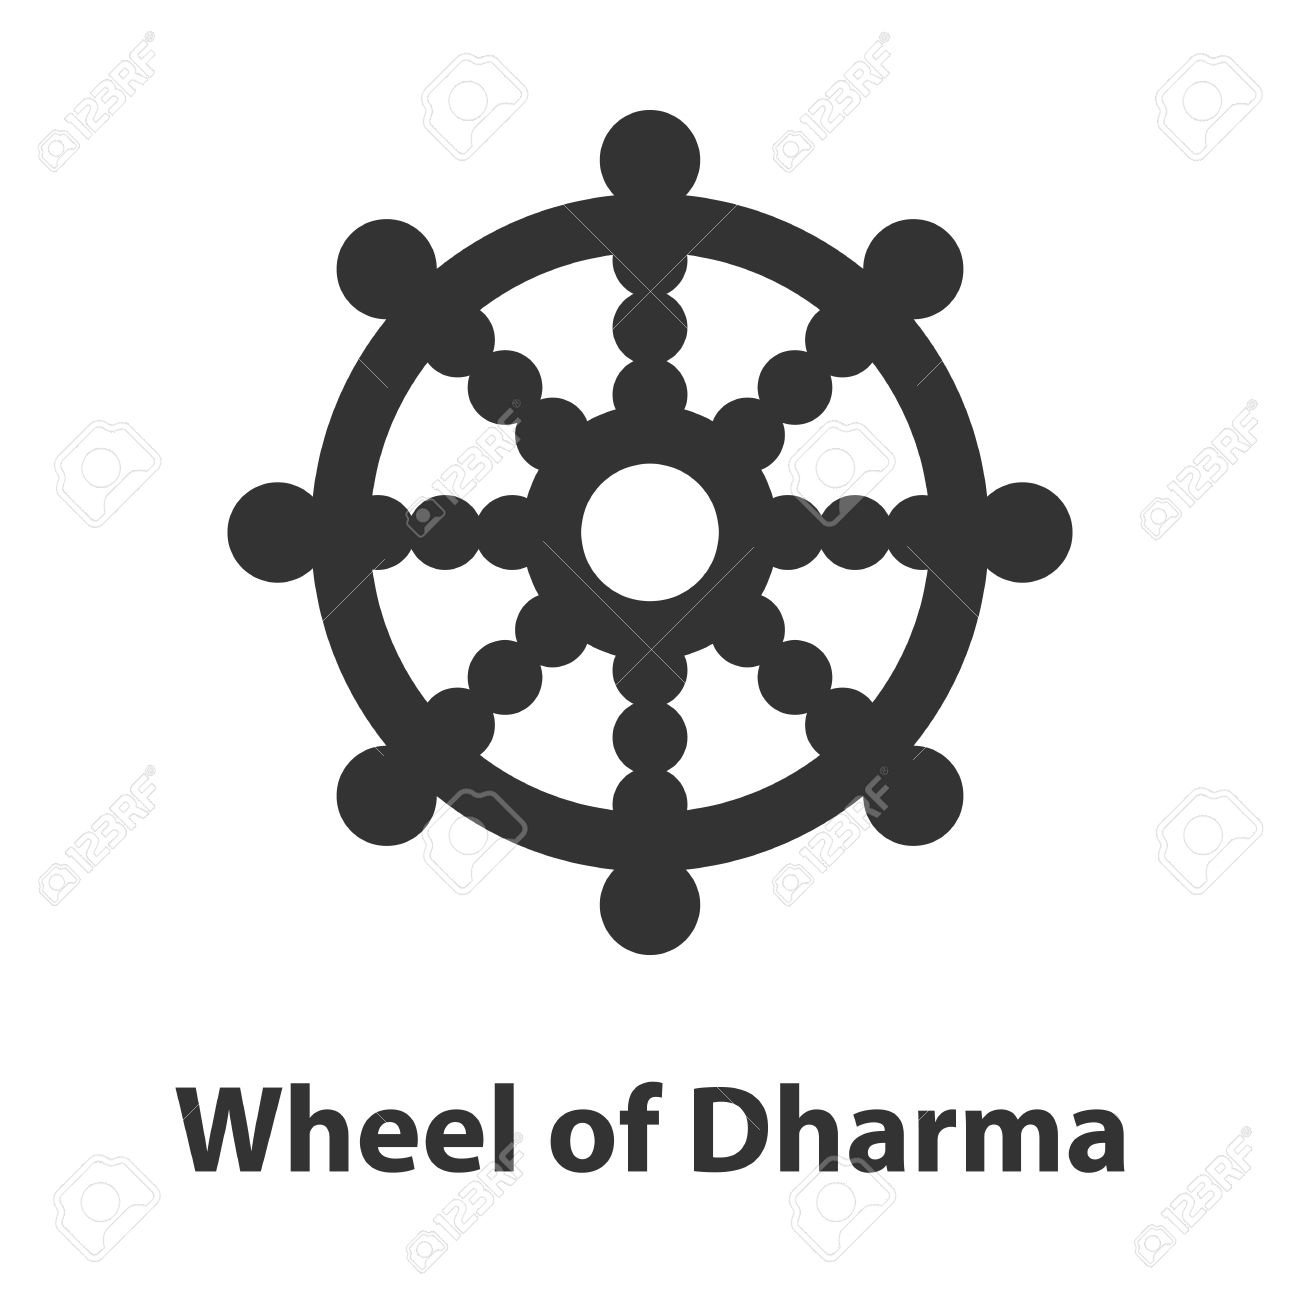 Icon of wheel of dharma symbol buddhism religion sign royalty free icon of wheel of dharma symbol buddhism religion sign stock vector 68283335 buycottarizona Image collections